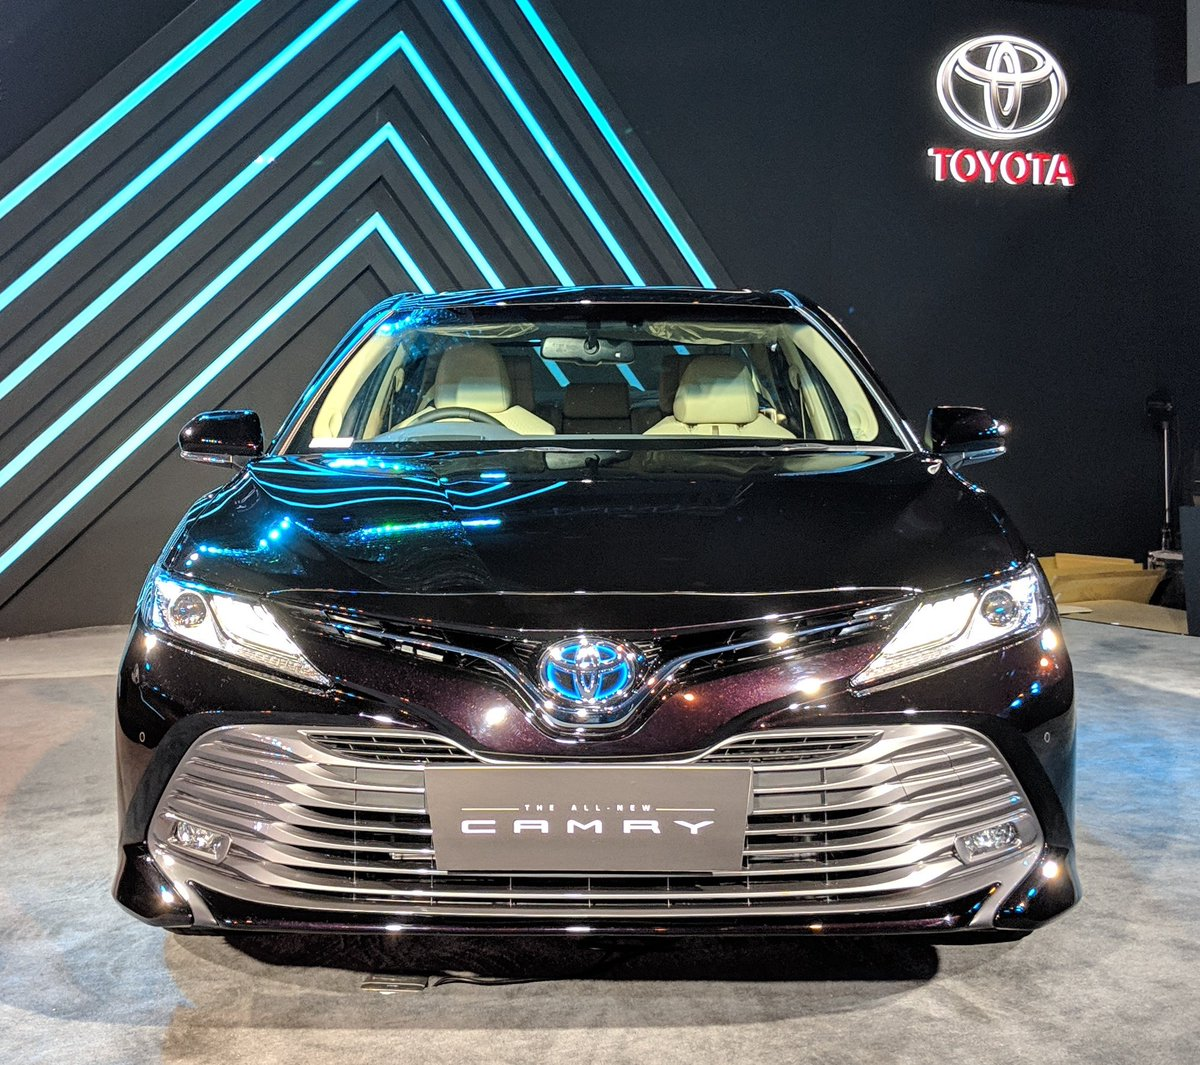 brand new toyota camry hybrid pelindung radiator grand avanza live updates 2019 launch in india overdrive the has been launched at